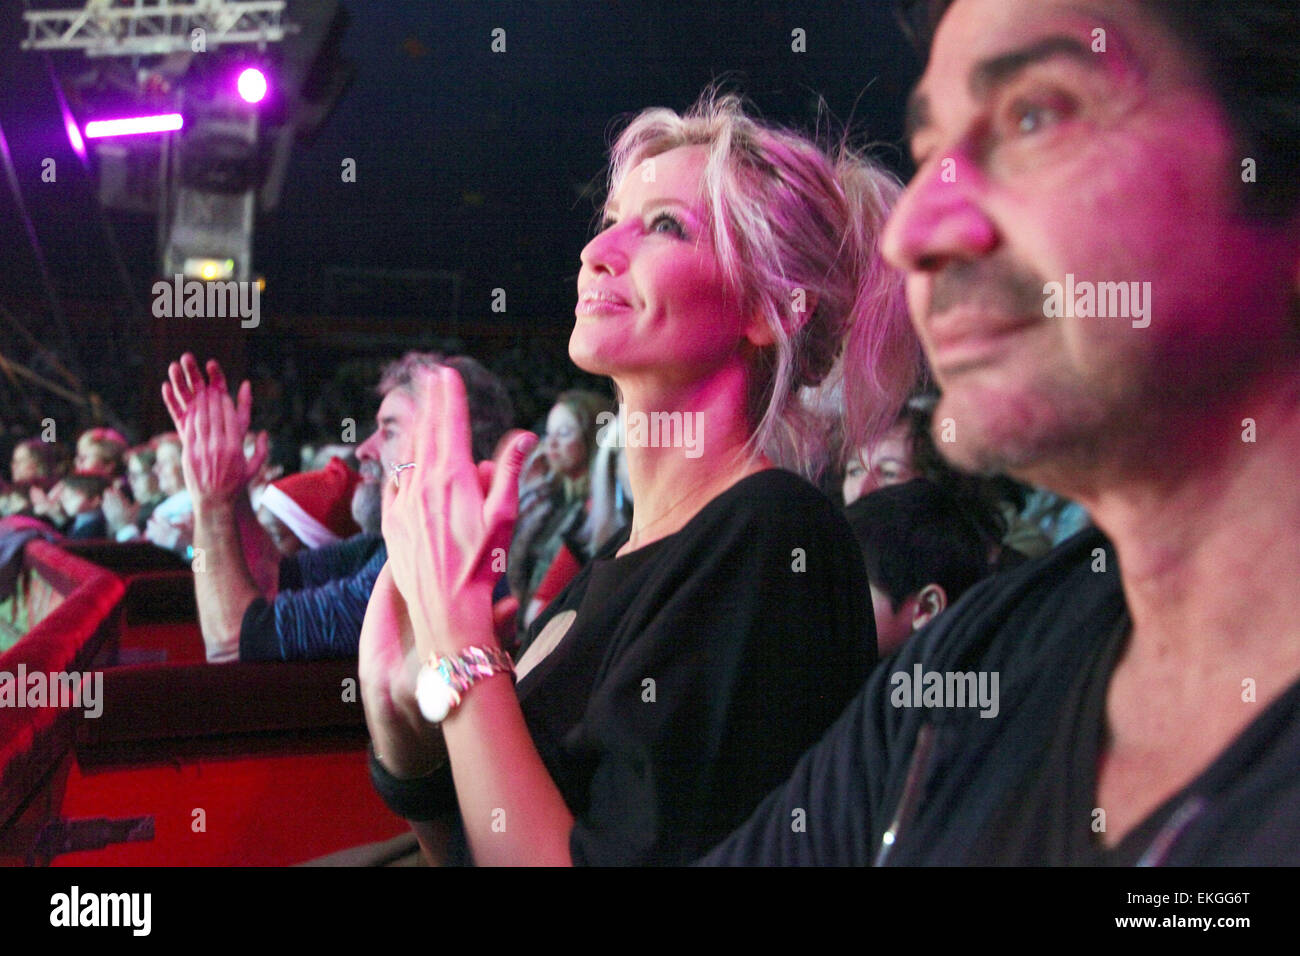 02.DECEMBER.2011. PARIS ADRIANA KAREMBEU AND ANDRE OHANIAN ATTEND